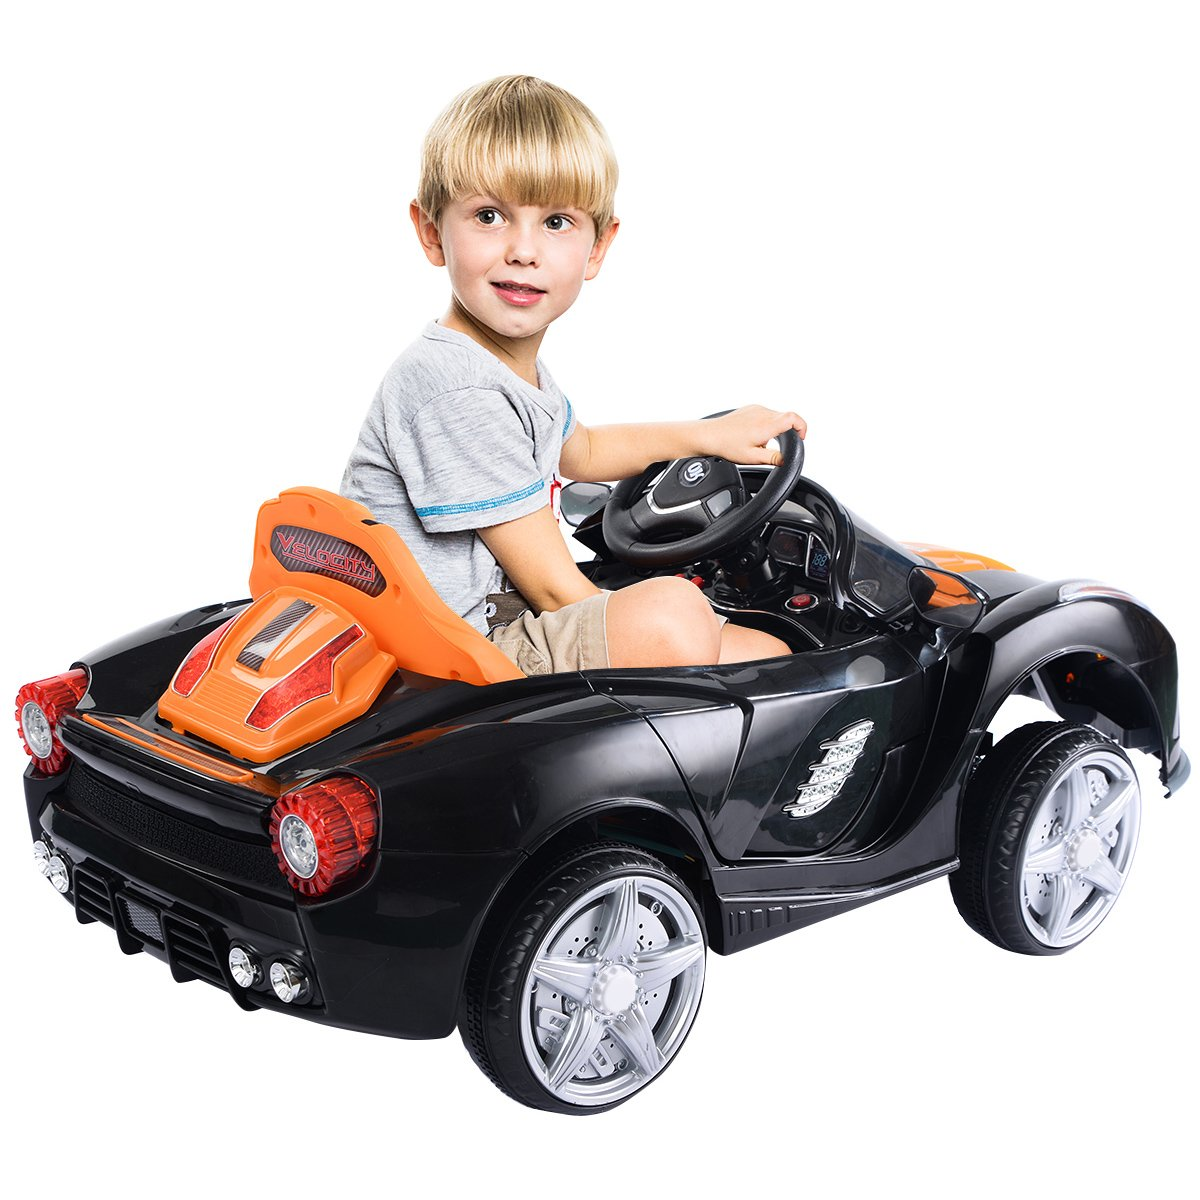 Costzon Kids Ride On Car 12v Battery Powered Vehicle Wiring Diagram 12 Volt Toys Parental Rc Remote Control Manual Modes W Led Lights Horn Music Mp3 Open Doors